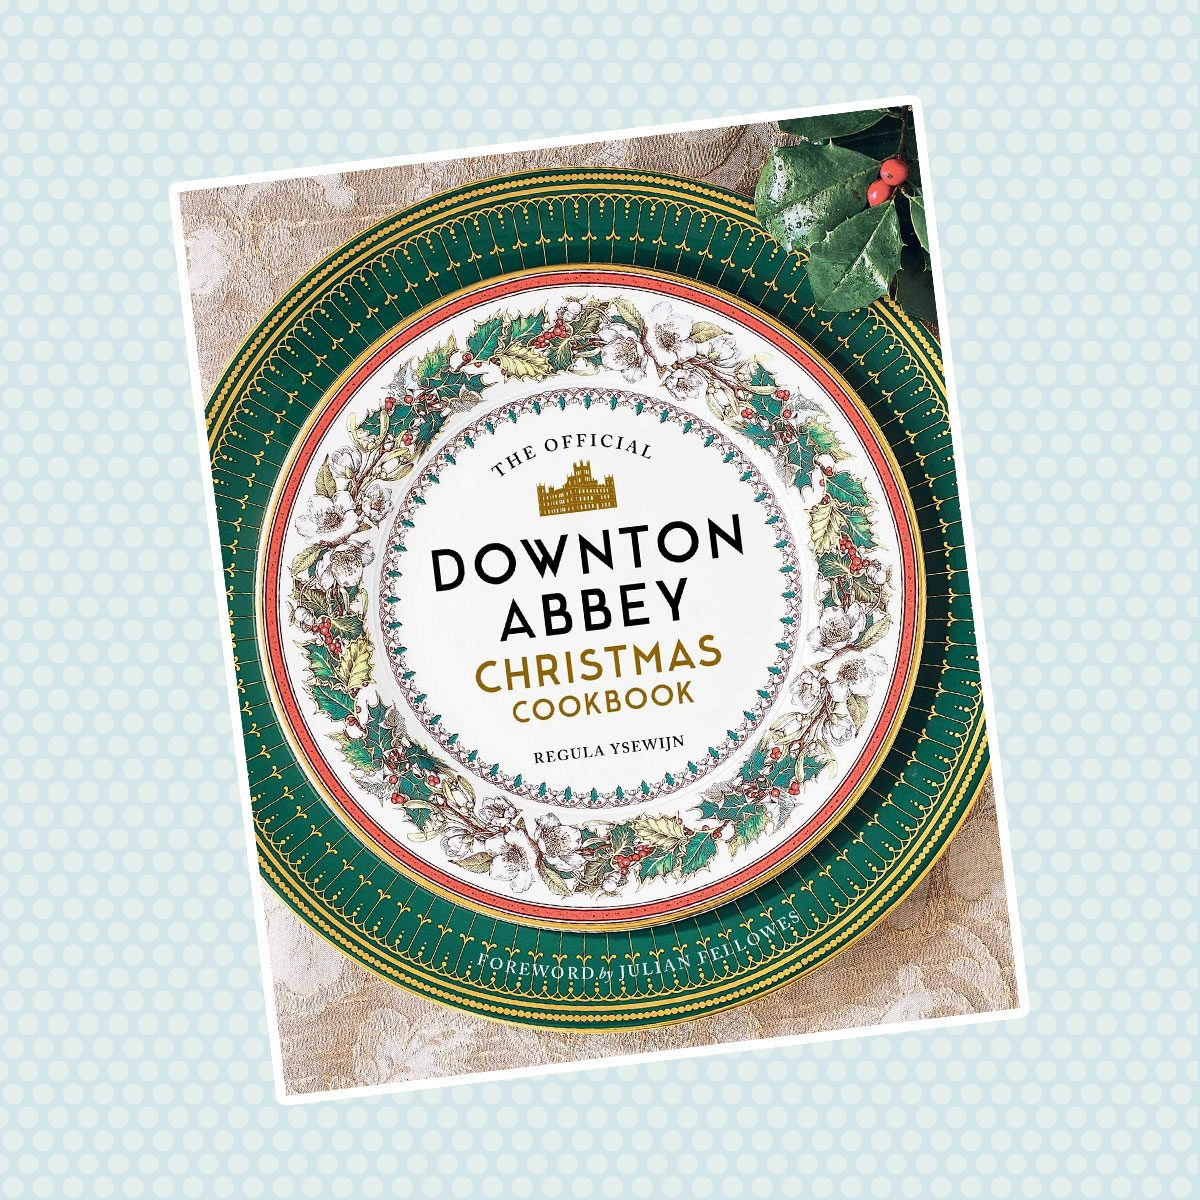 The Official Downton Abbey Christmas Cookbook (Downton Abbey Cookery) Hardcover – November 3, 2020